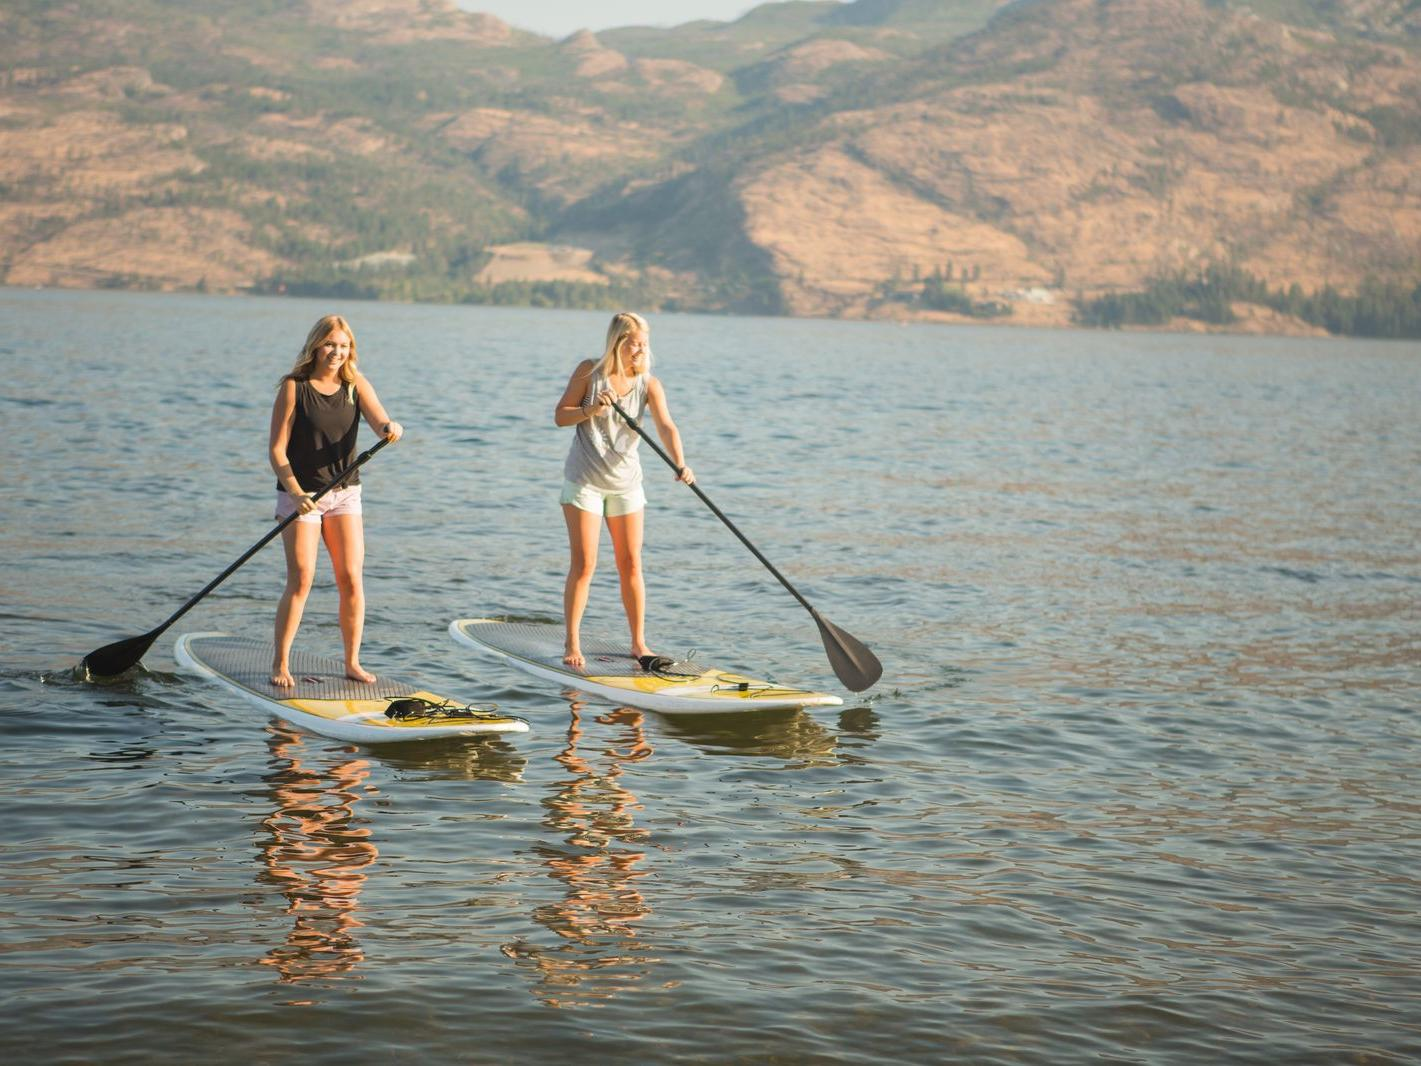 stand up paddlebaording lakesurf okanagan